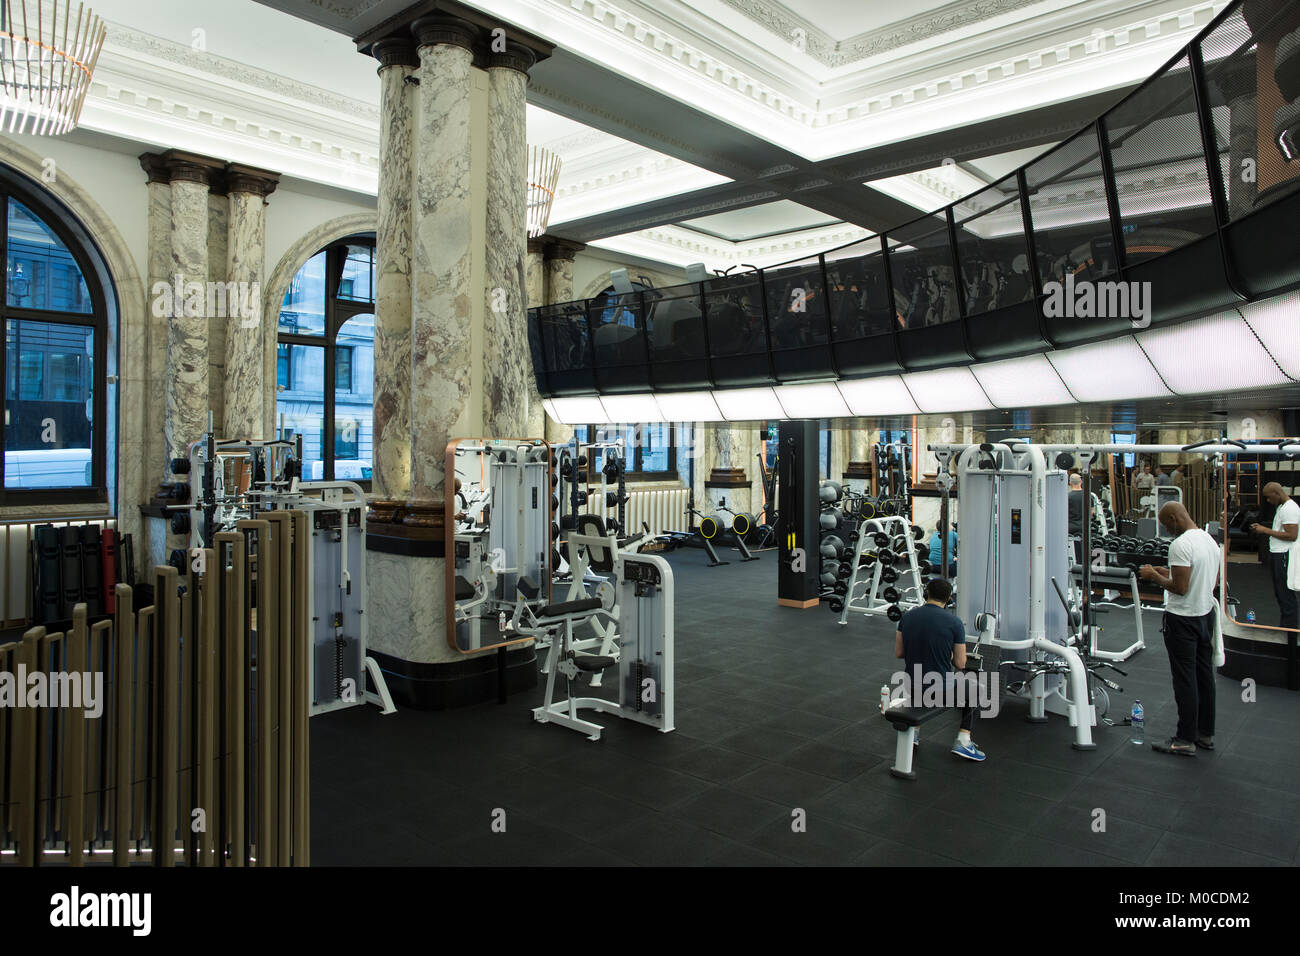 E by Equinox, high-end luxury gym membership, at no 12 St